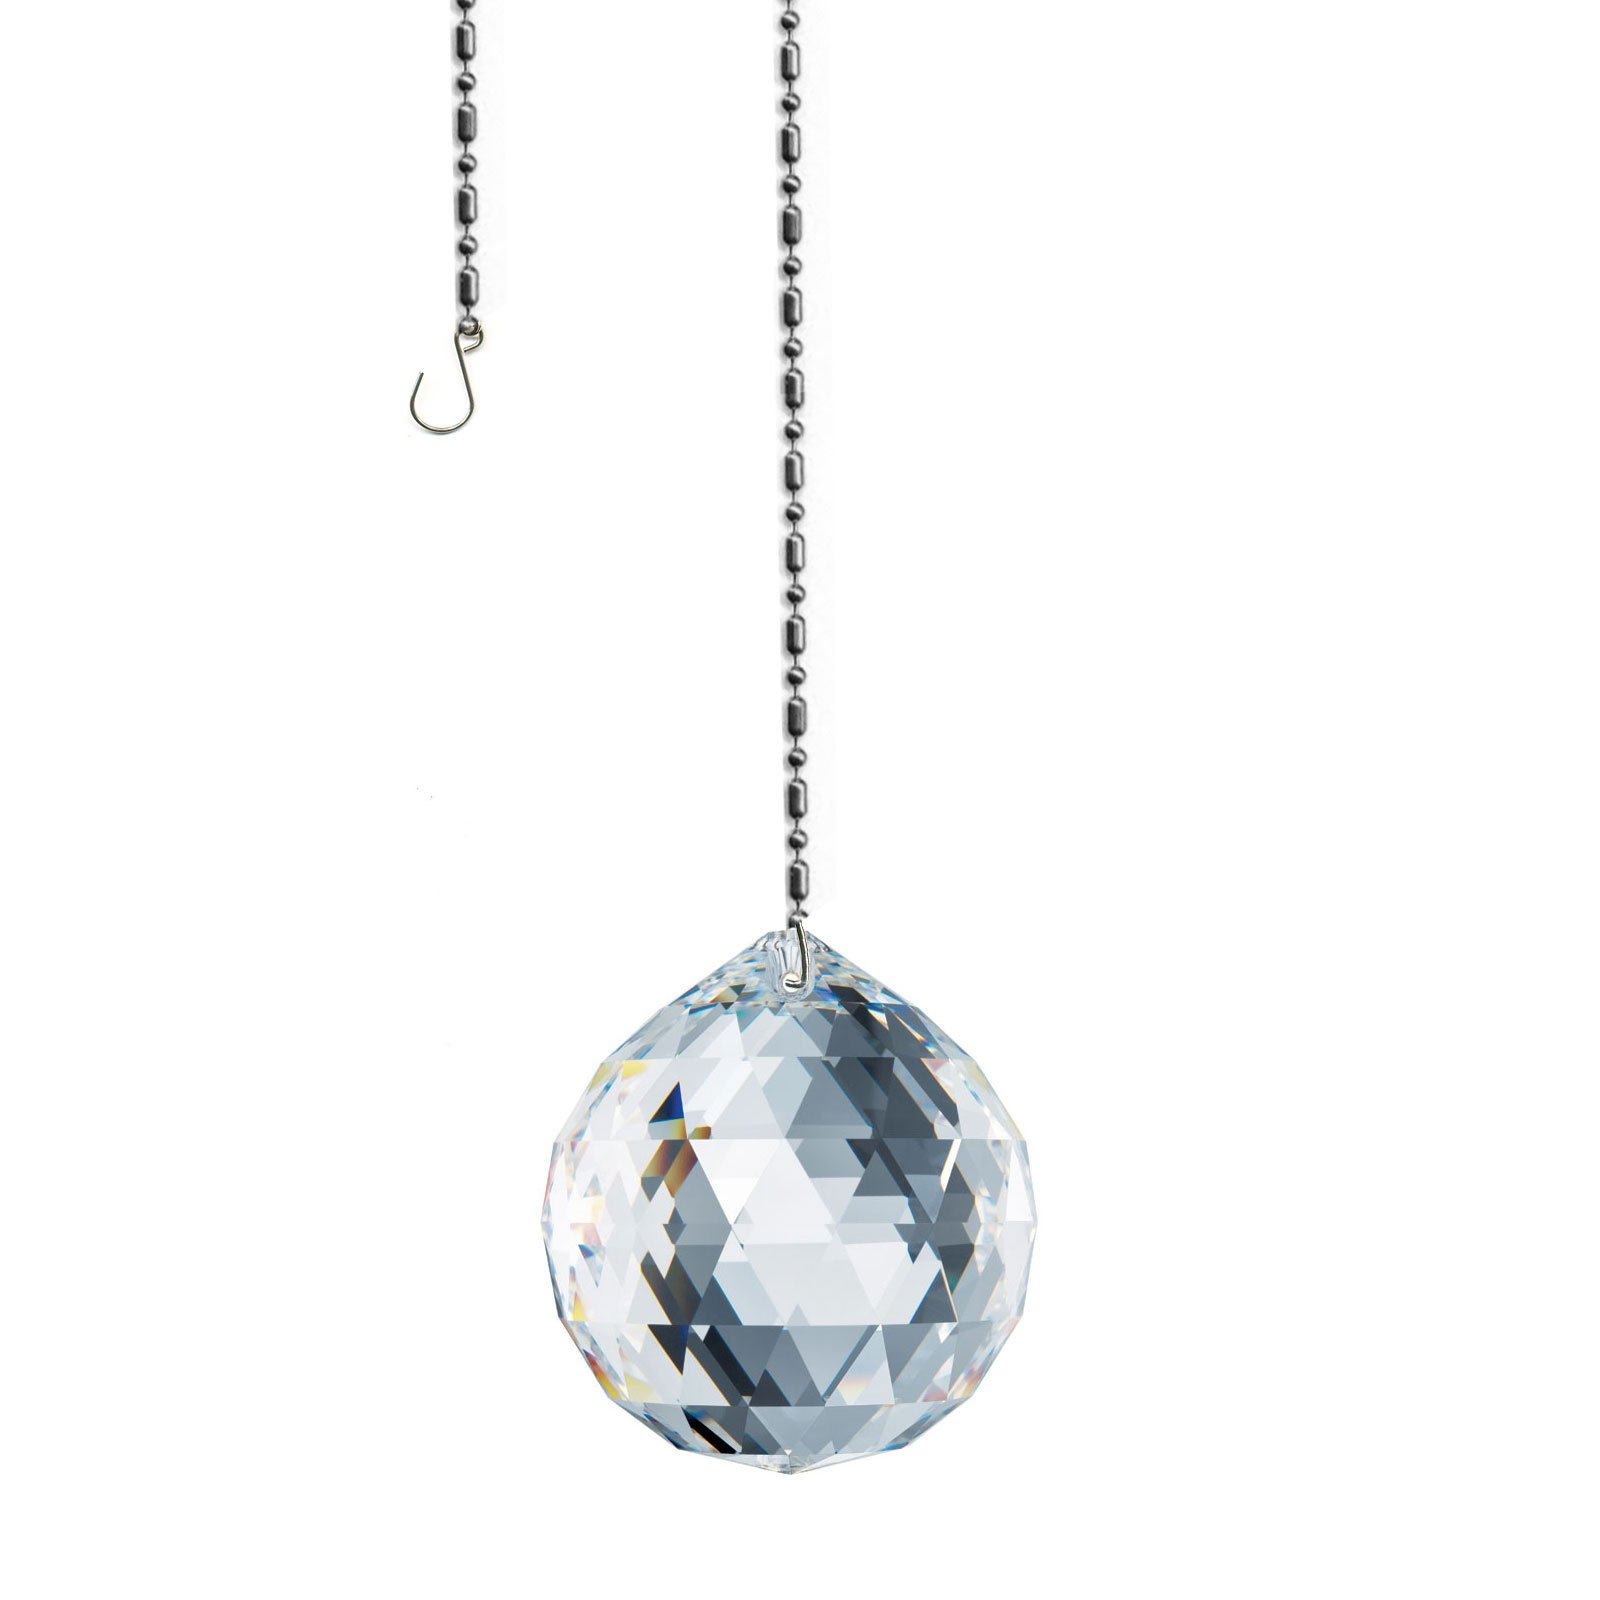 Swarovski 30mm Ball Prism Suncatcher, Rainbow Maker, Feng Shui crystal Amazing Clarity & Shine with Strass Logo Engraved